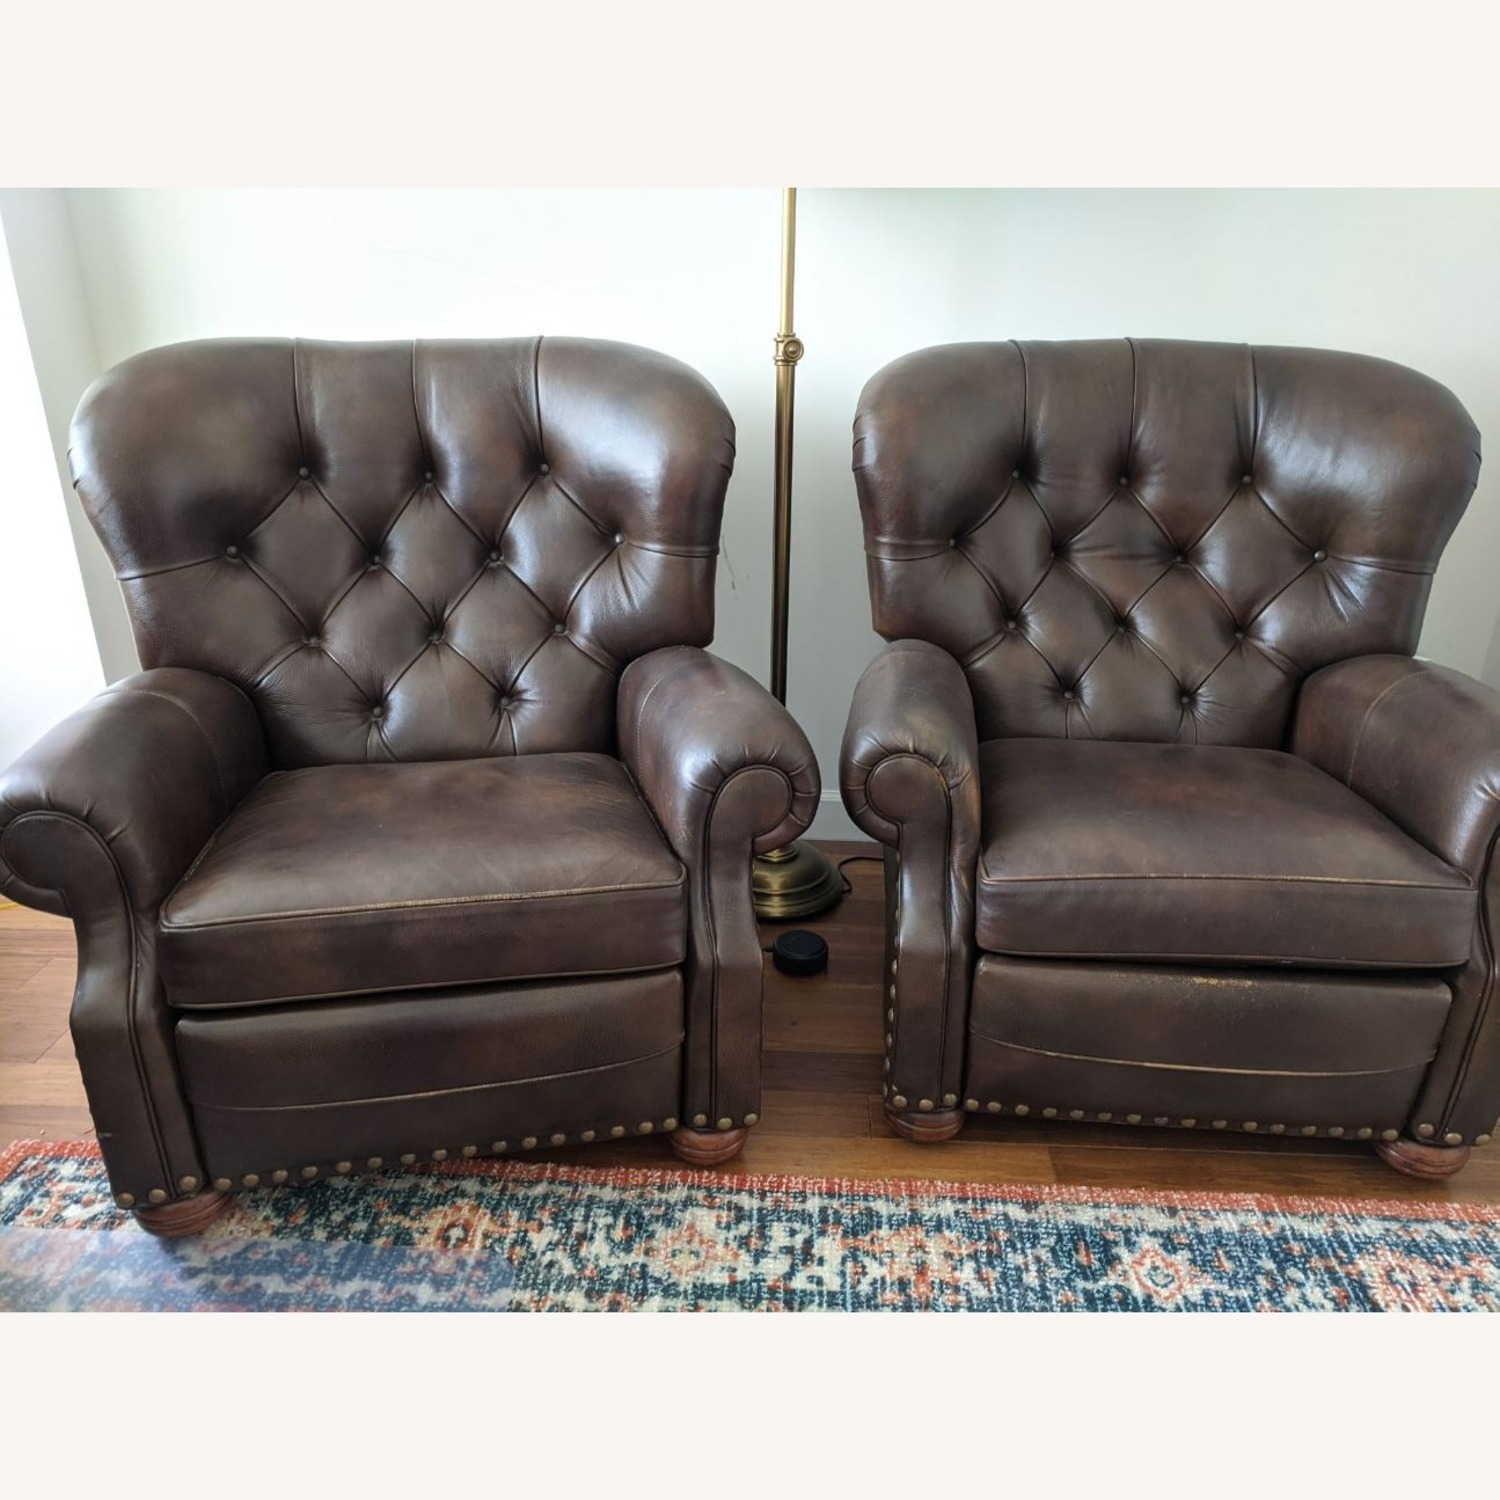 Ethan Allen Leather Recliner Chair (2 avail) - image-1